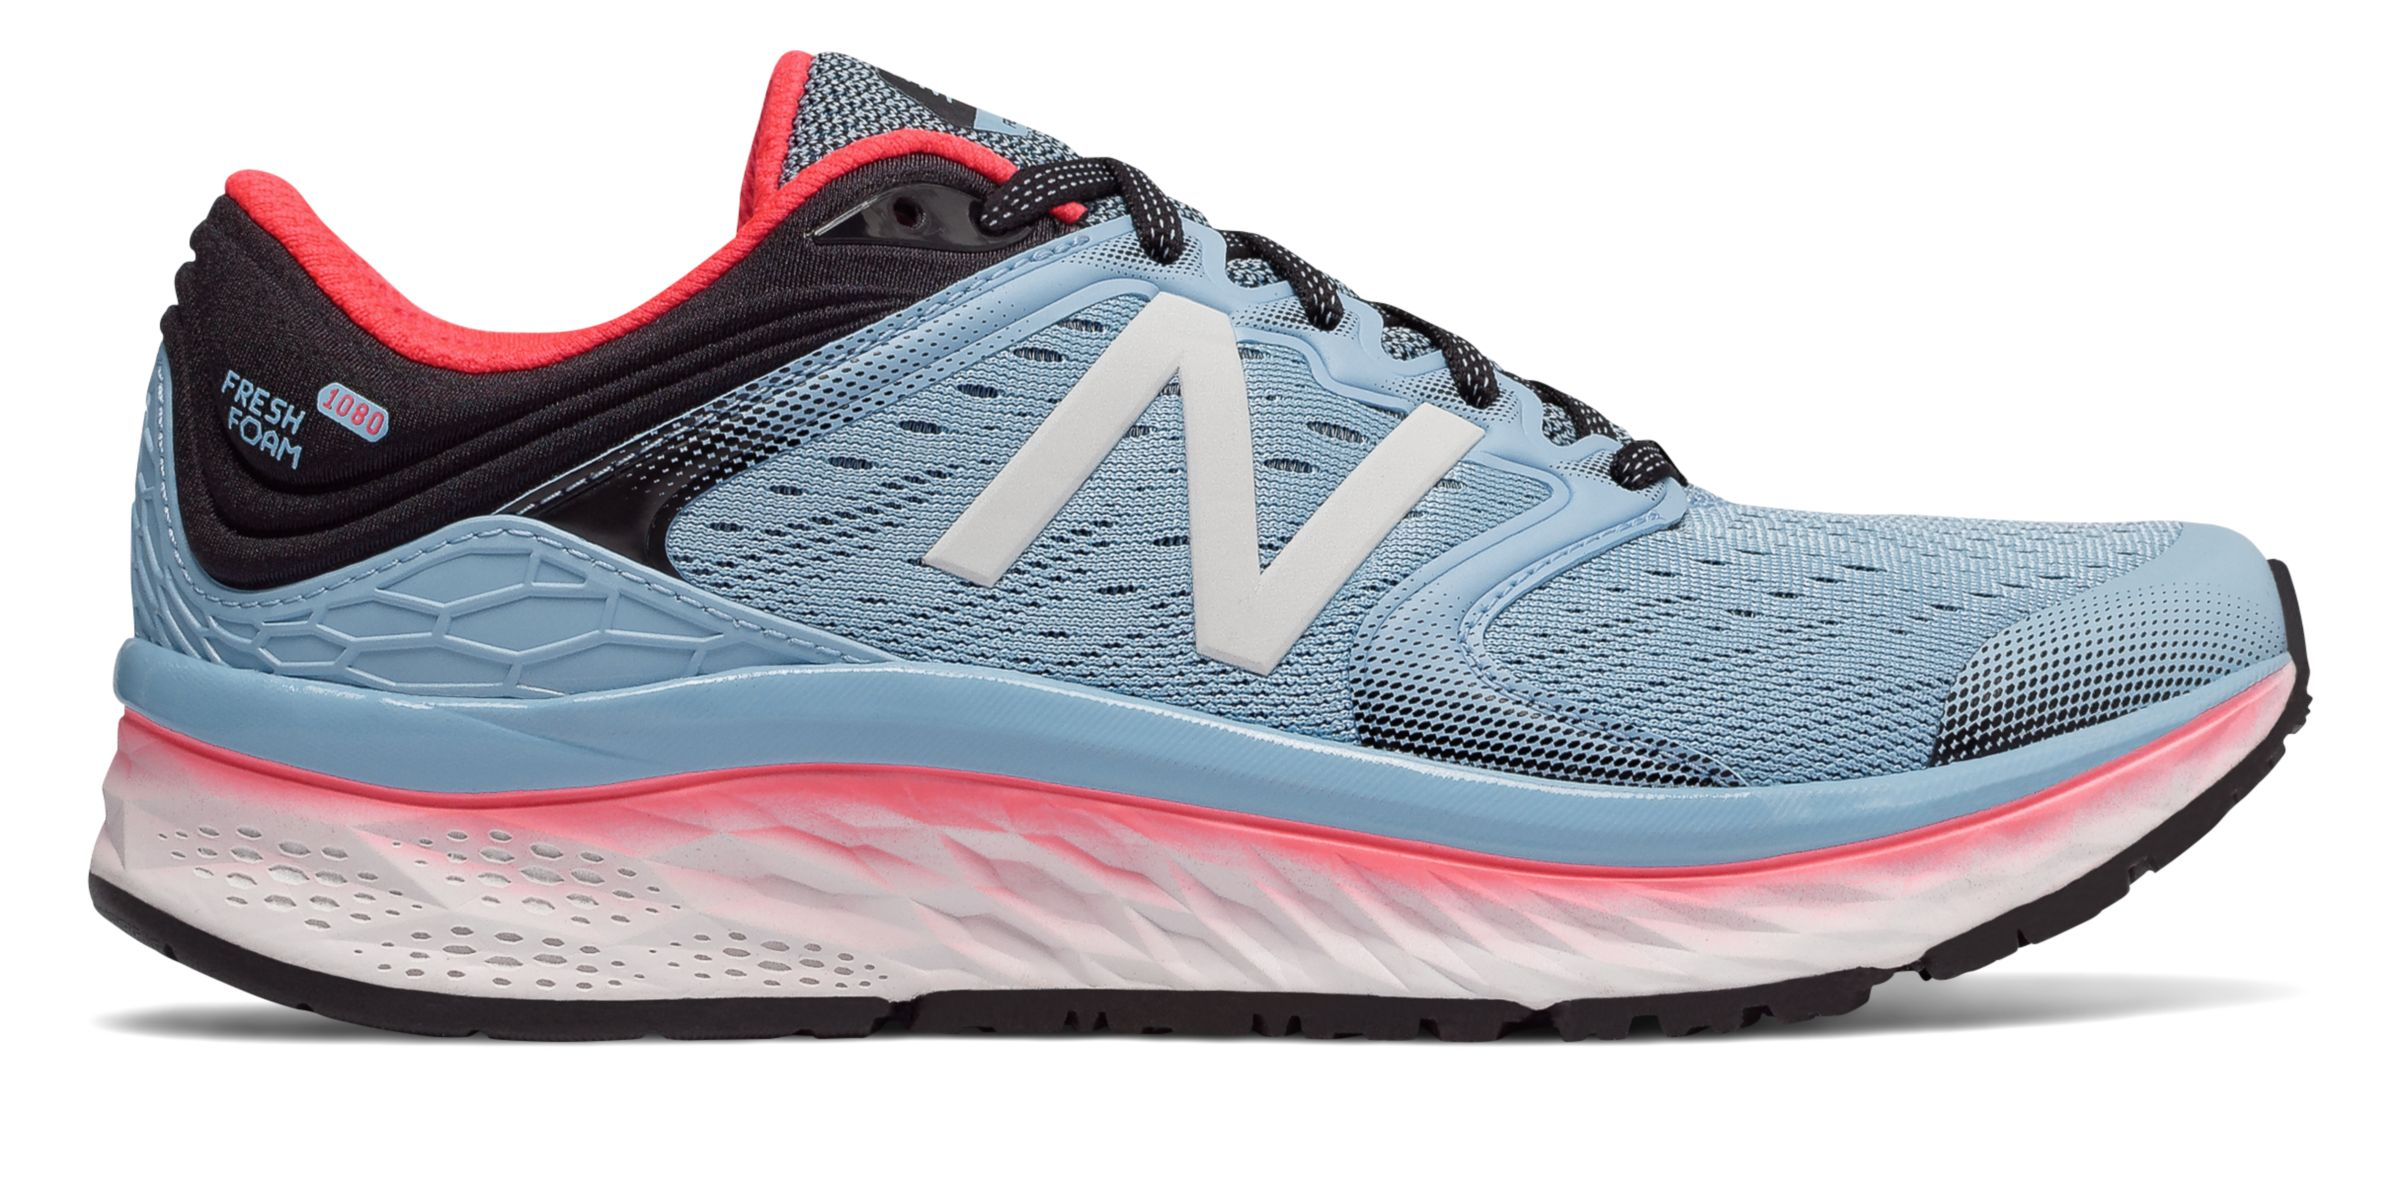 New Balance Fresh Foam 1080v8, Clear Sky with Vivid Coral & Black